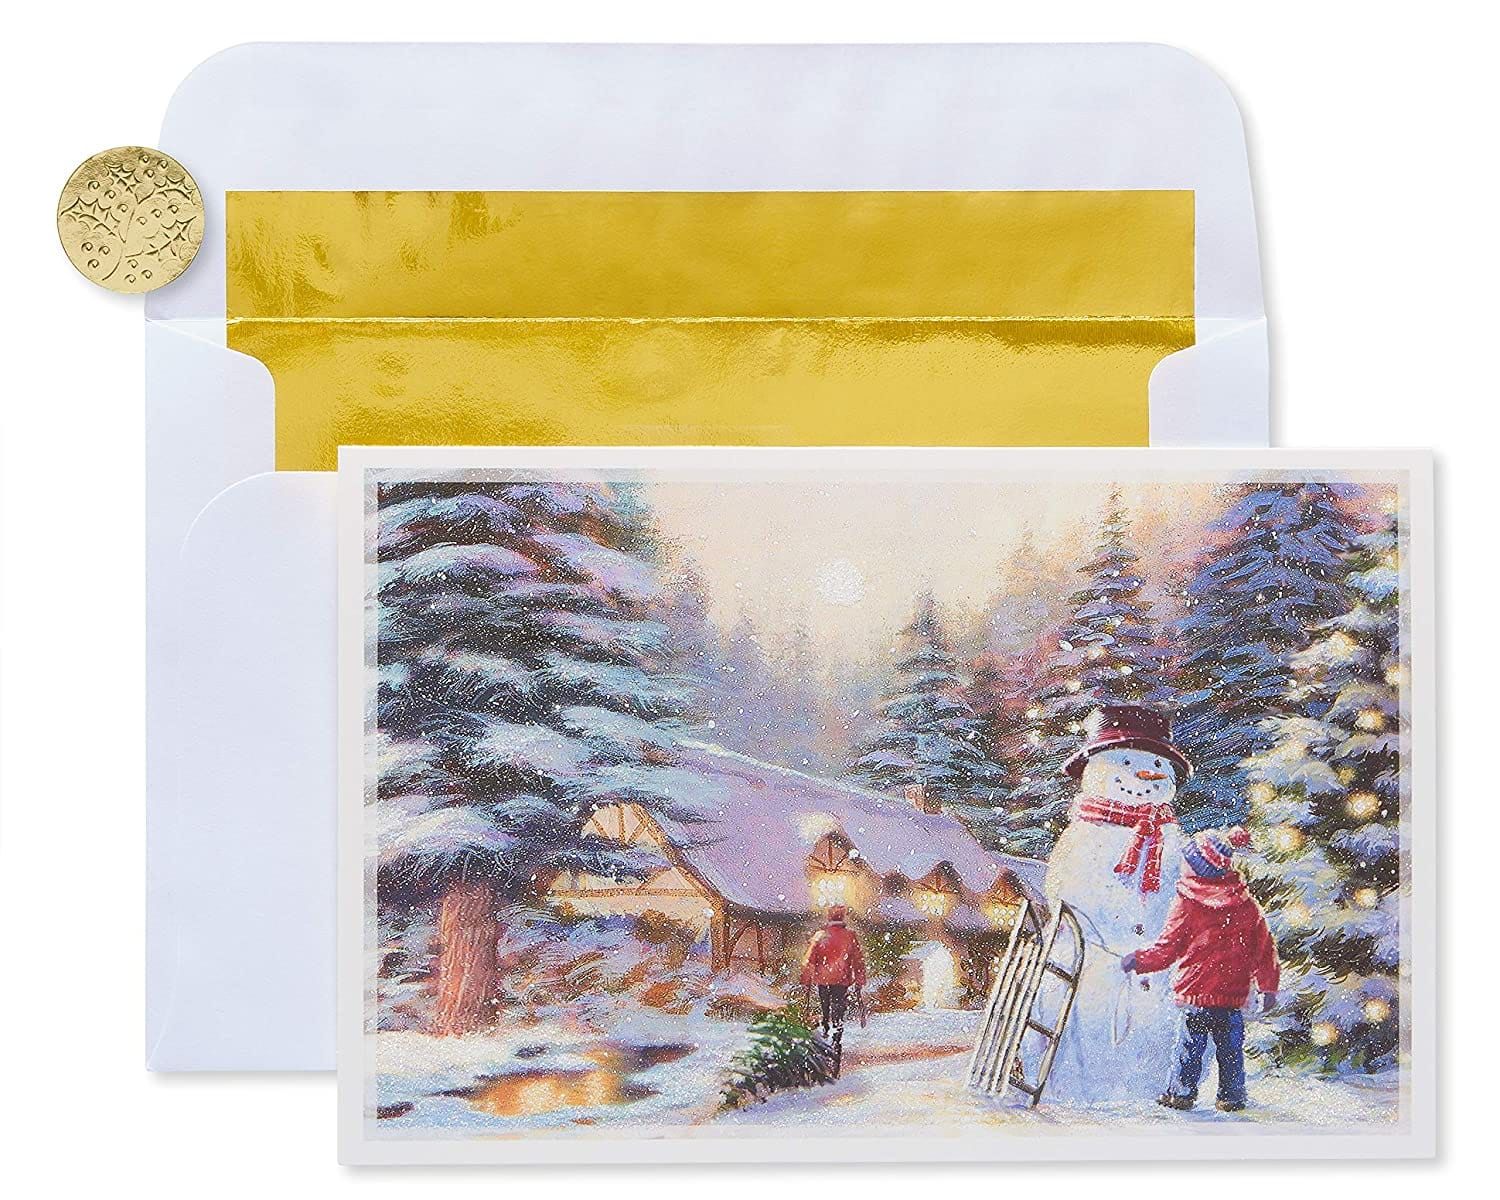 14-Ct. American Greetings Premium Gold Foil-Lined Kids and Snowman Christmas Boxed Cards $6.16 & More - Amazon